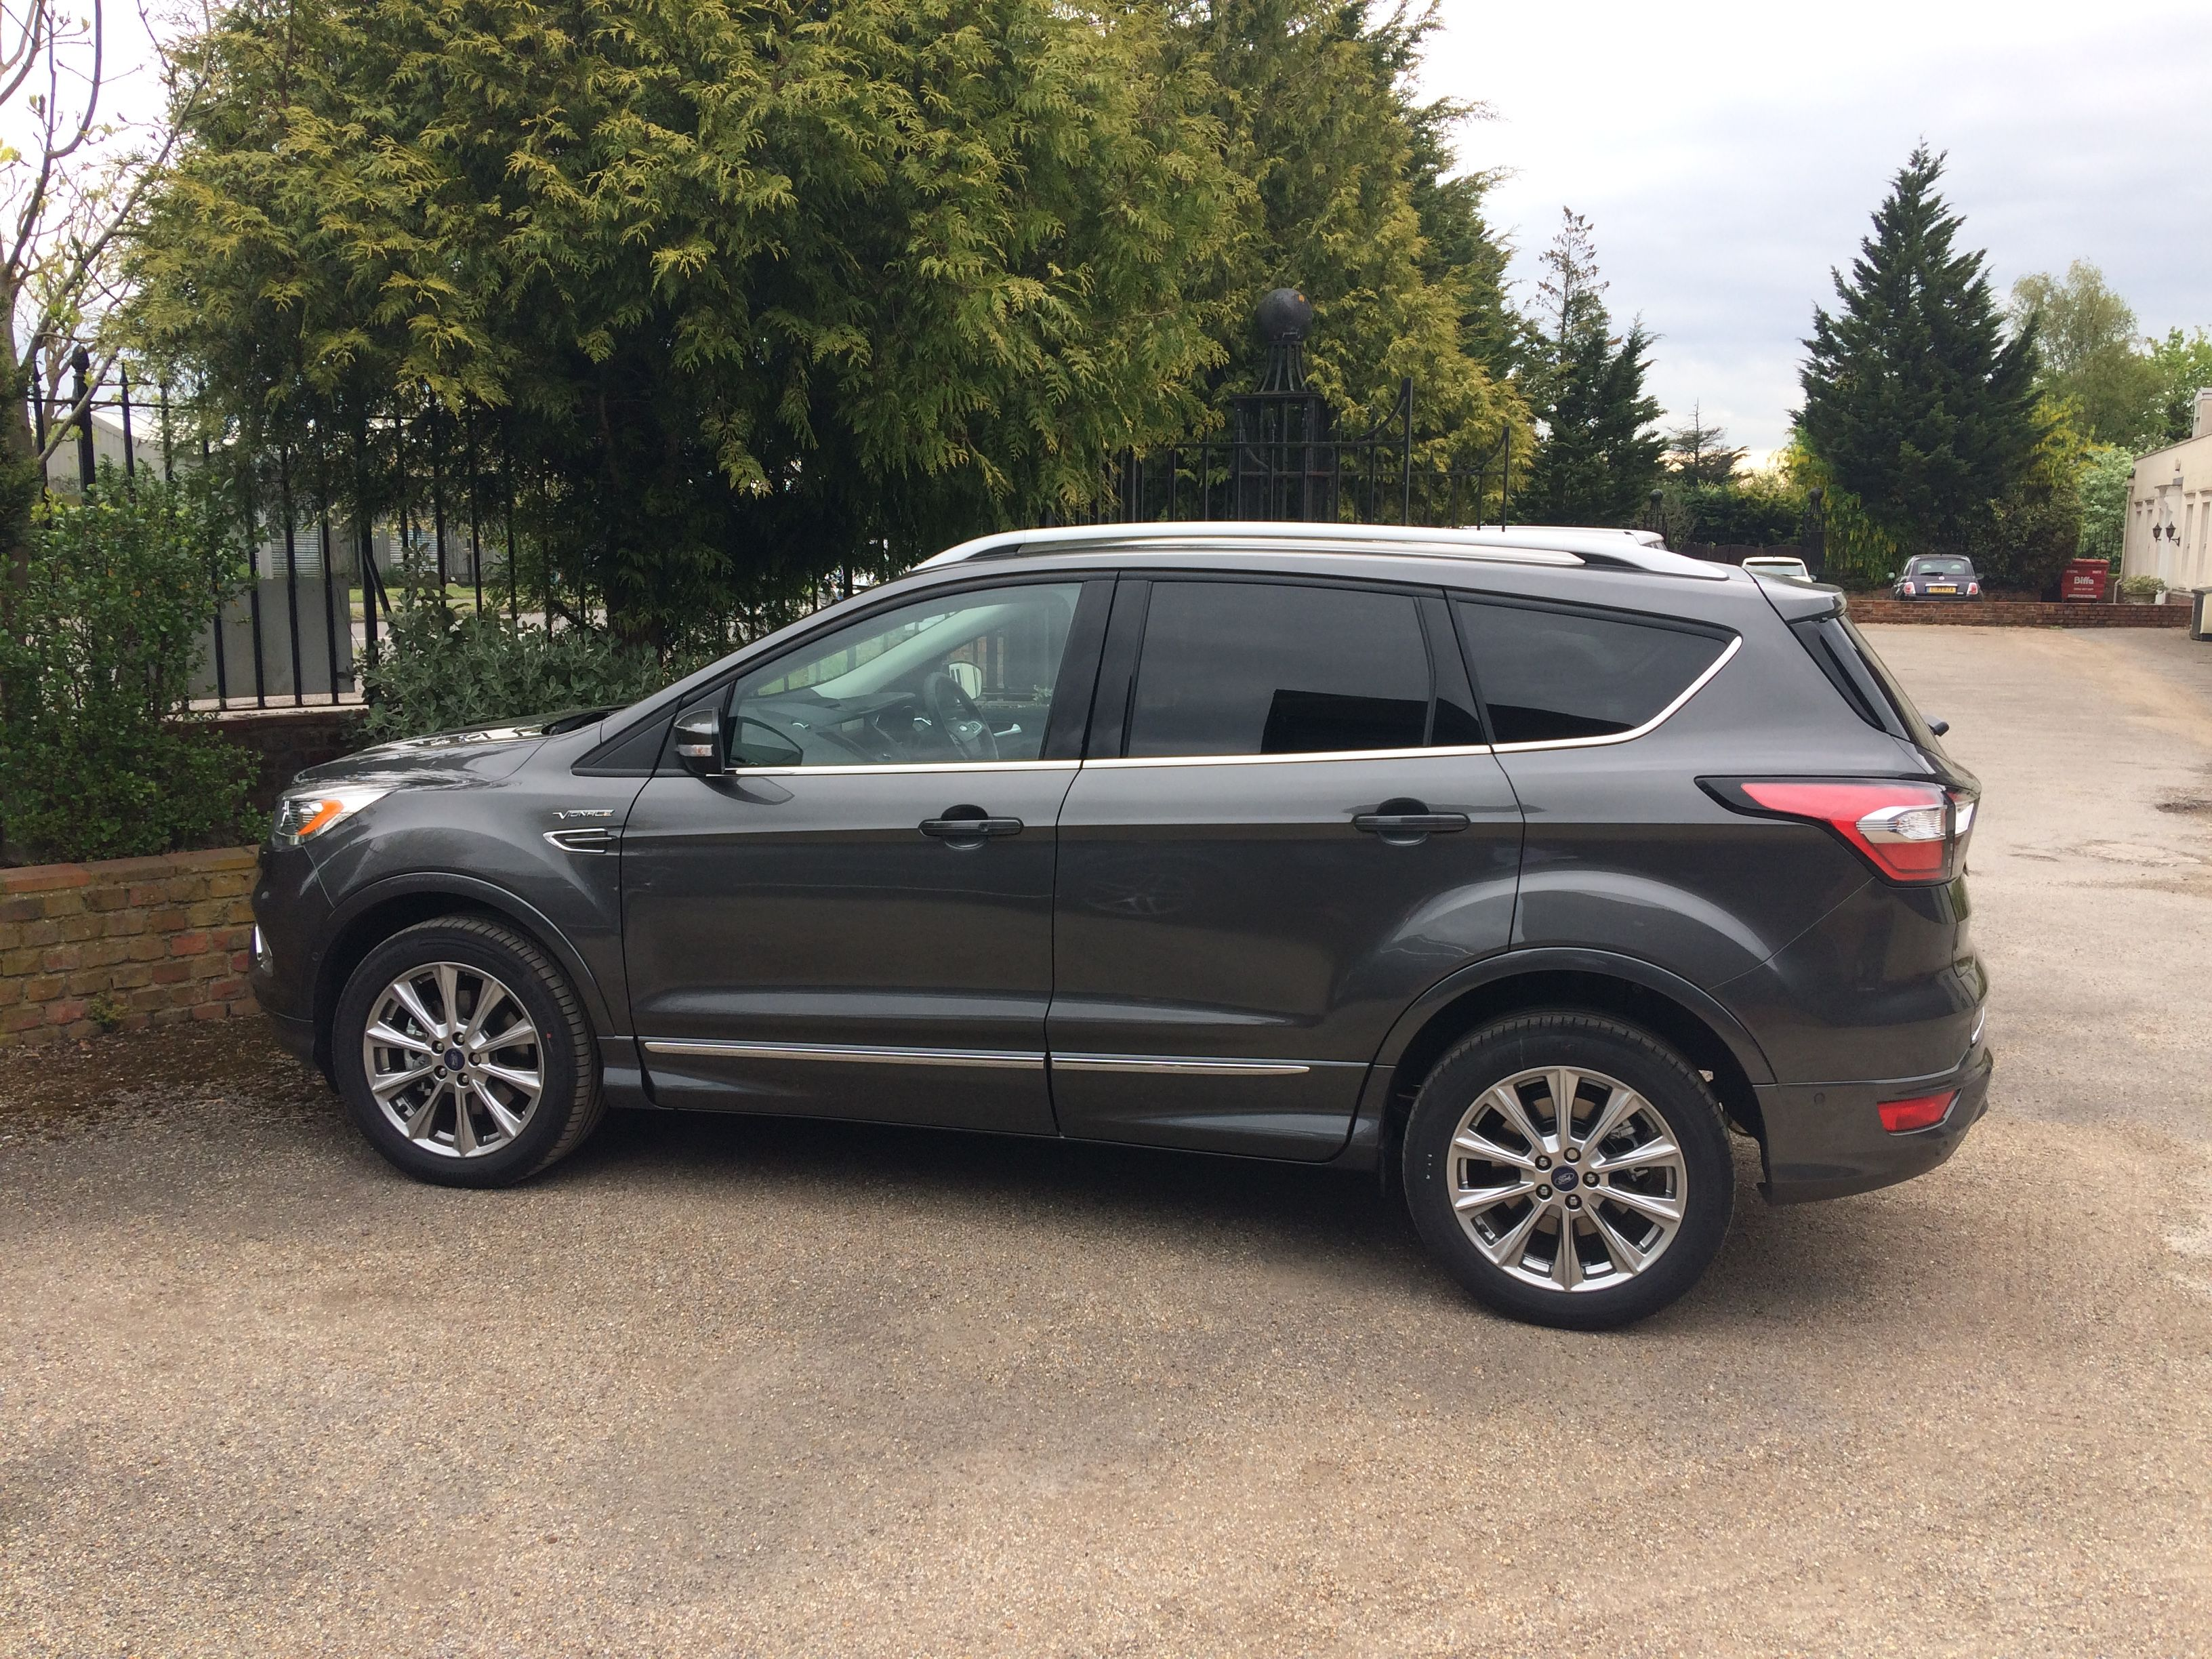 The Ford Kuga Leasing Deal One Of The Many Cars And Vans Available To Lease From Www Carlease Uk Com Ford Carleasing Car Deals Car Ford